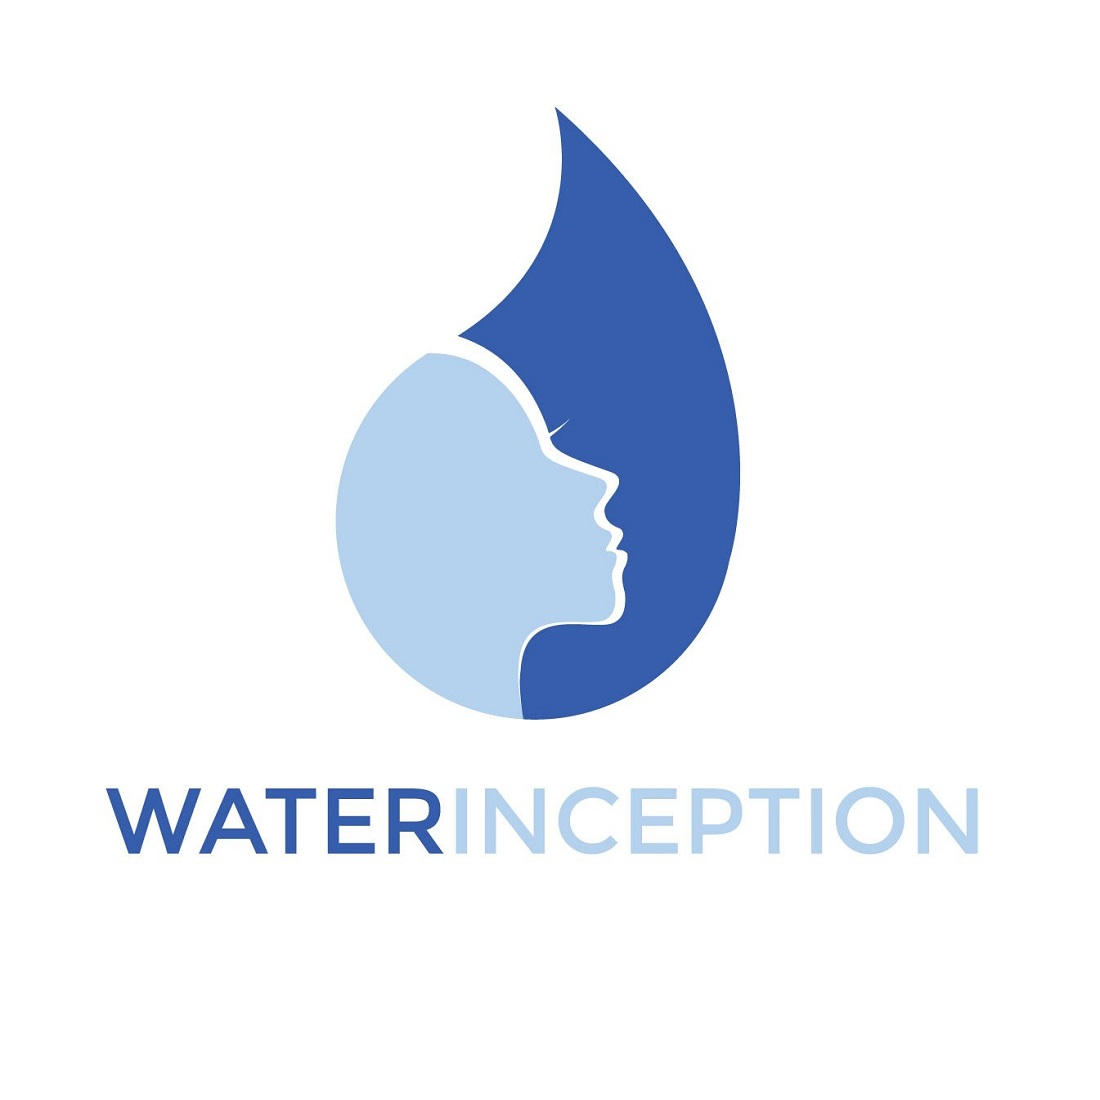 Permalink to:Water Inception